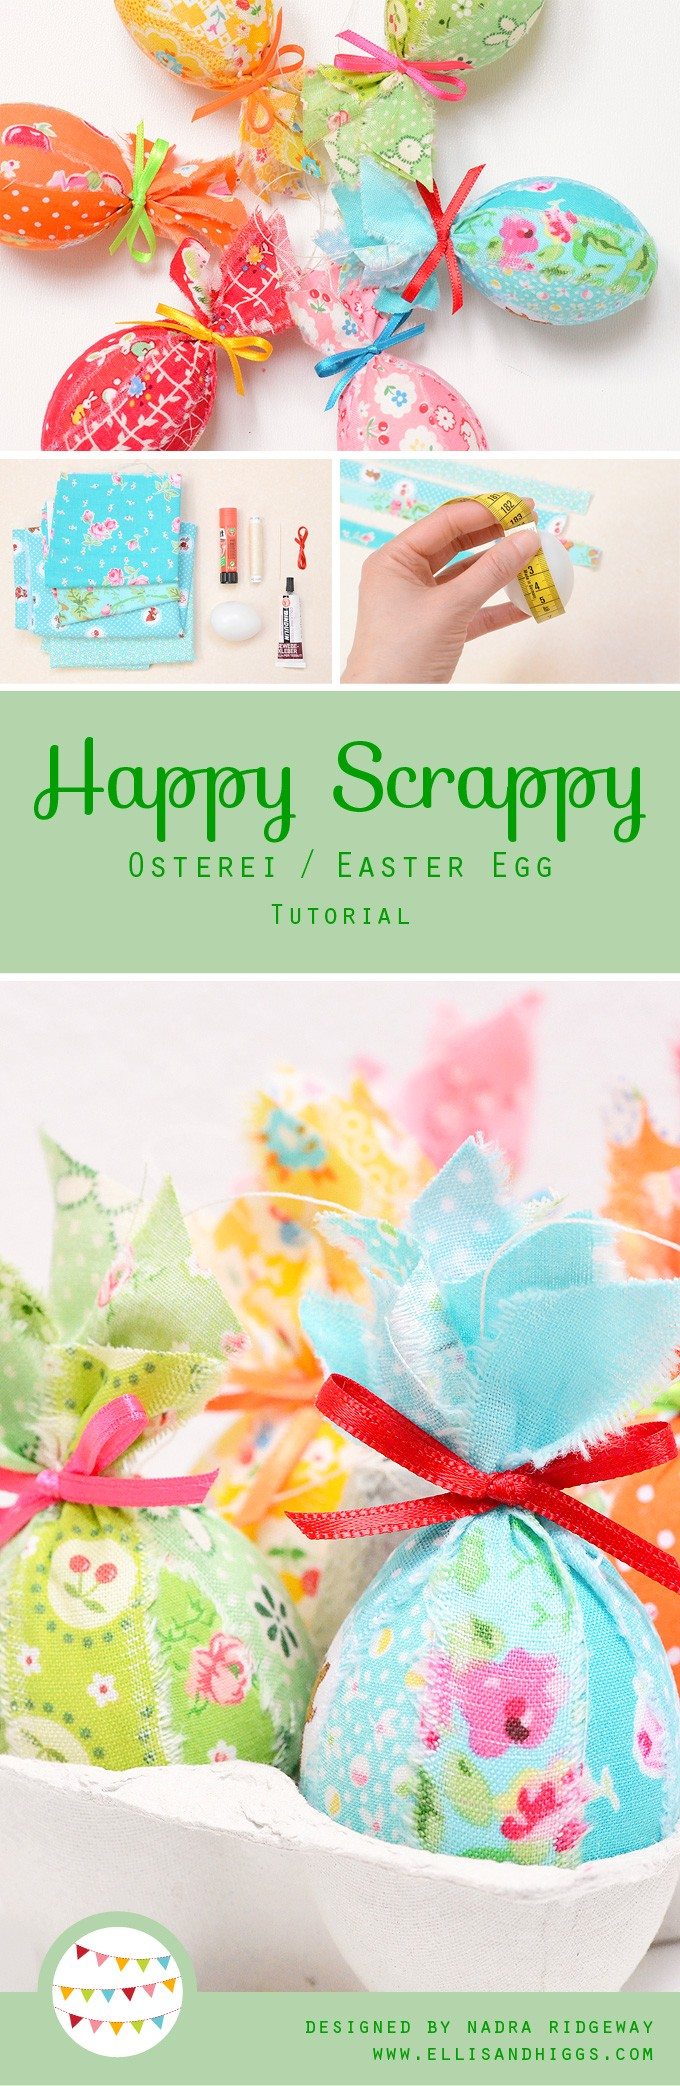 Happy Scrappy Easter Egg Tutorial